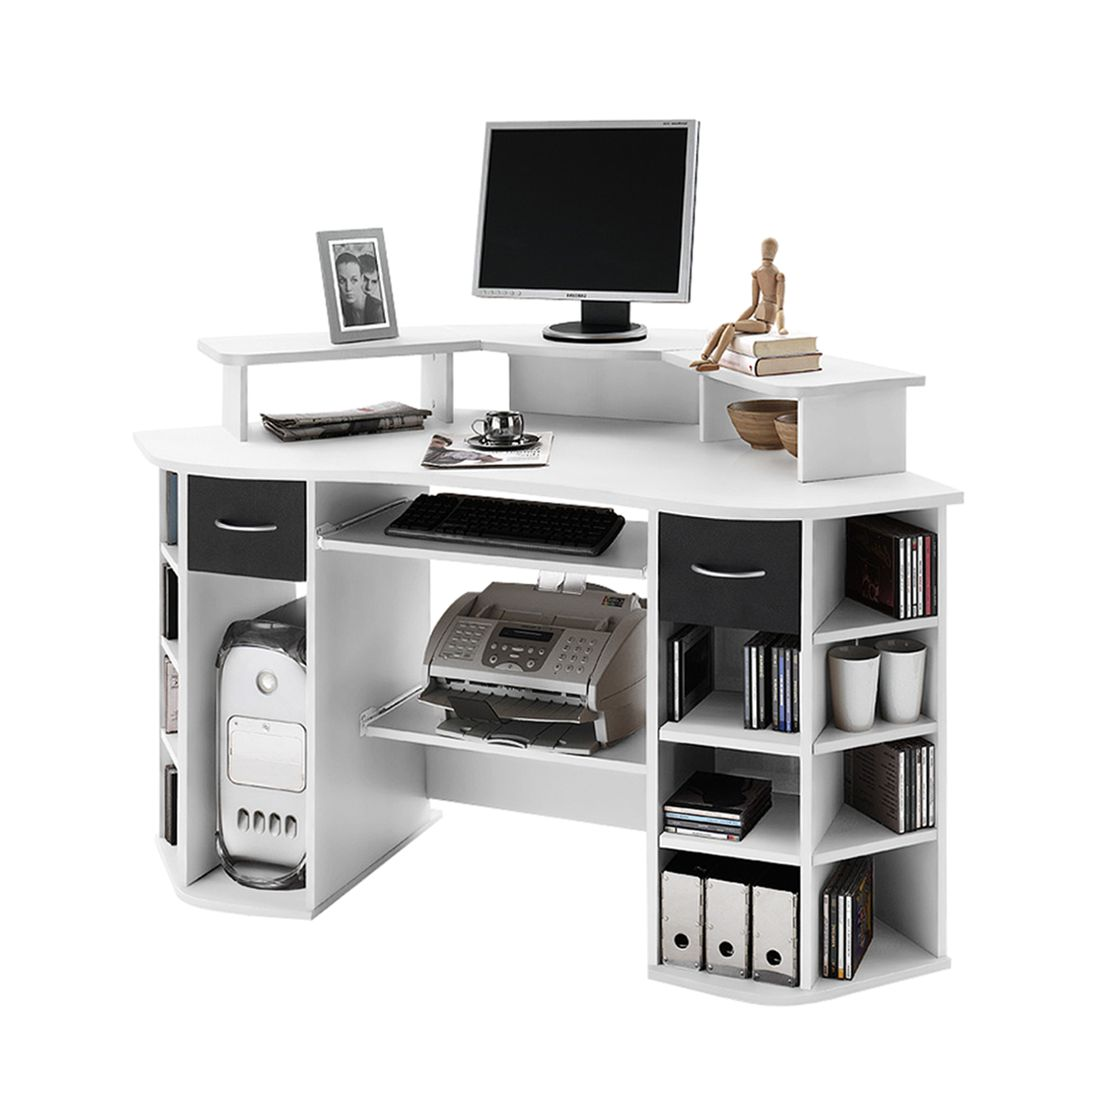 computertisch mit aufsatz g nstig kaufen. Black Bedroom Furniture Sets. Home Design Ideas